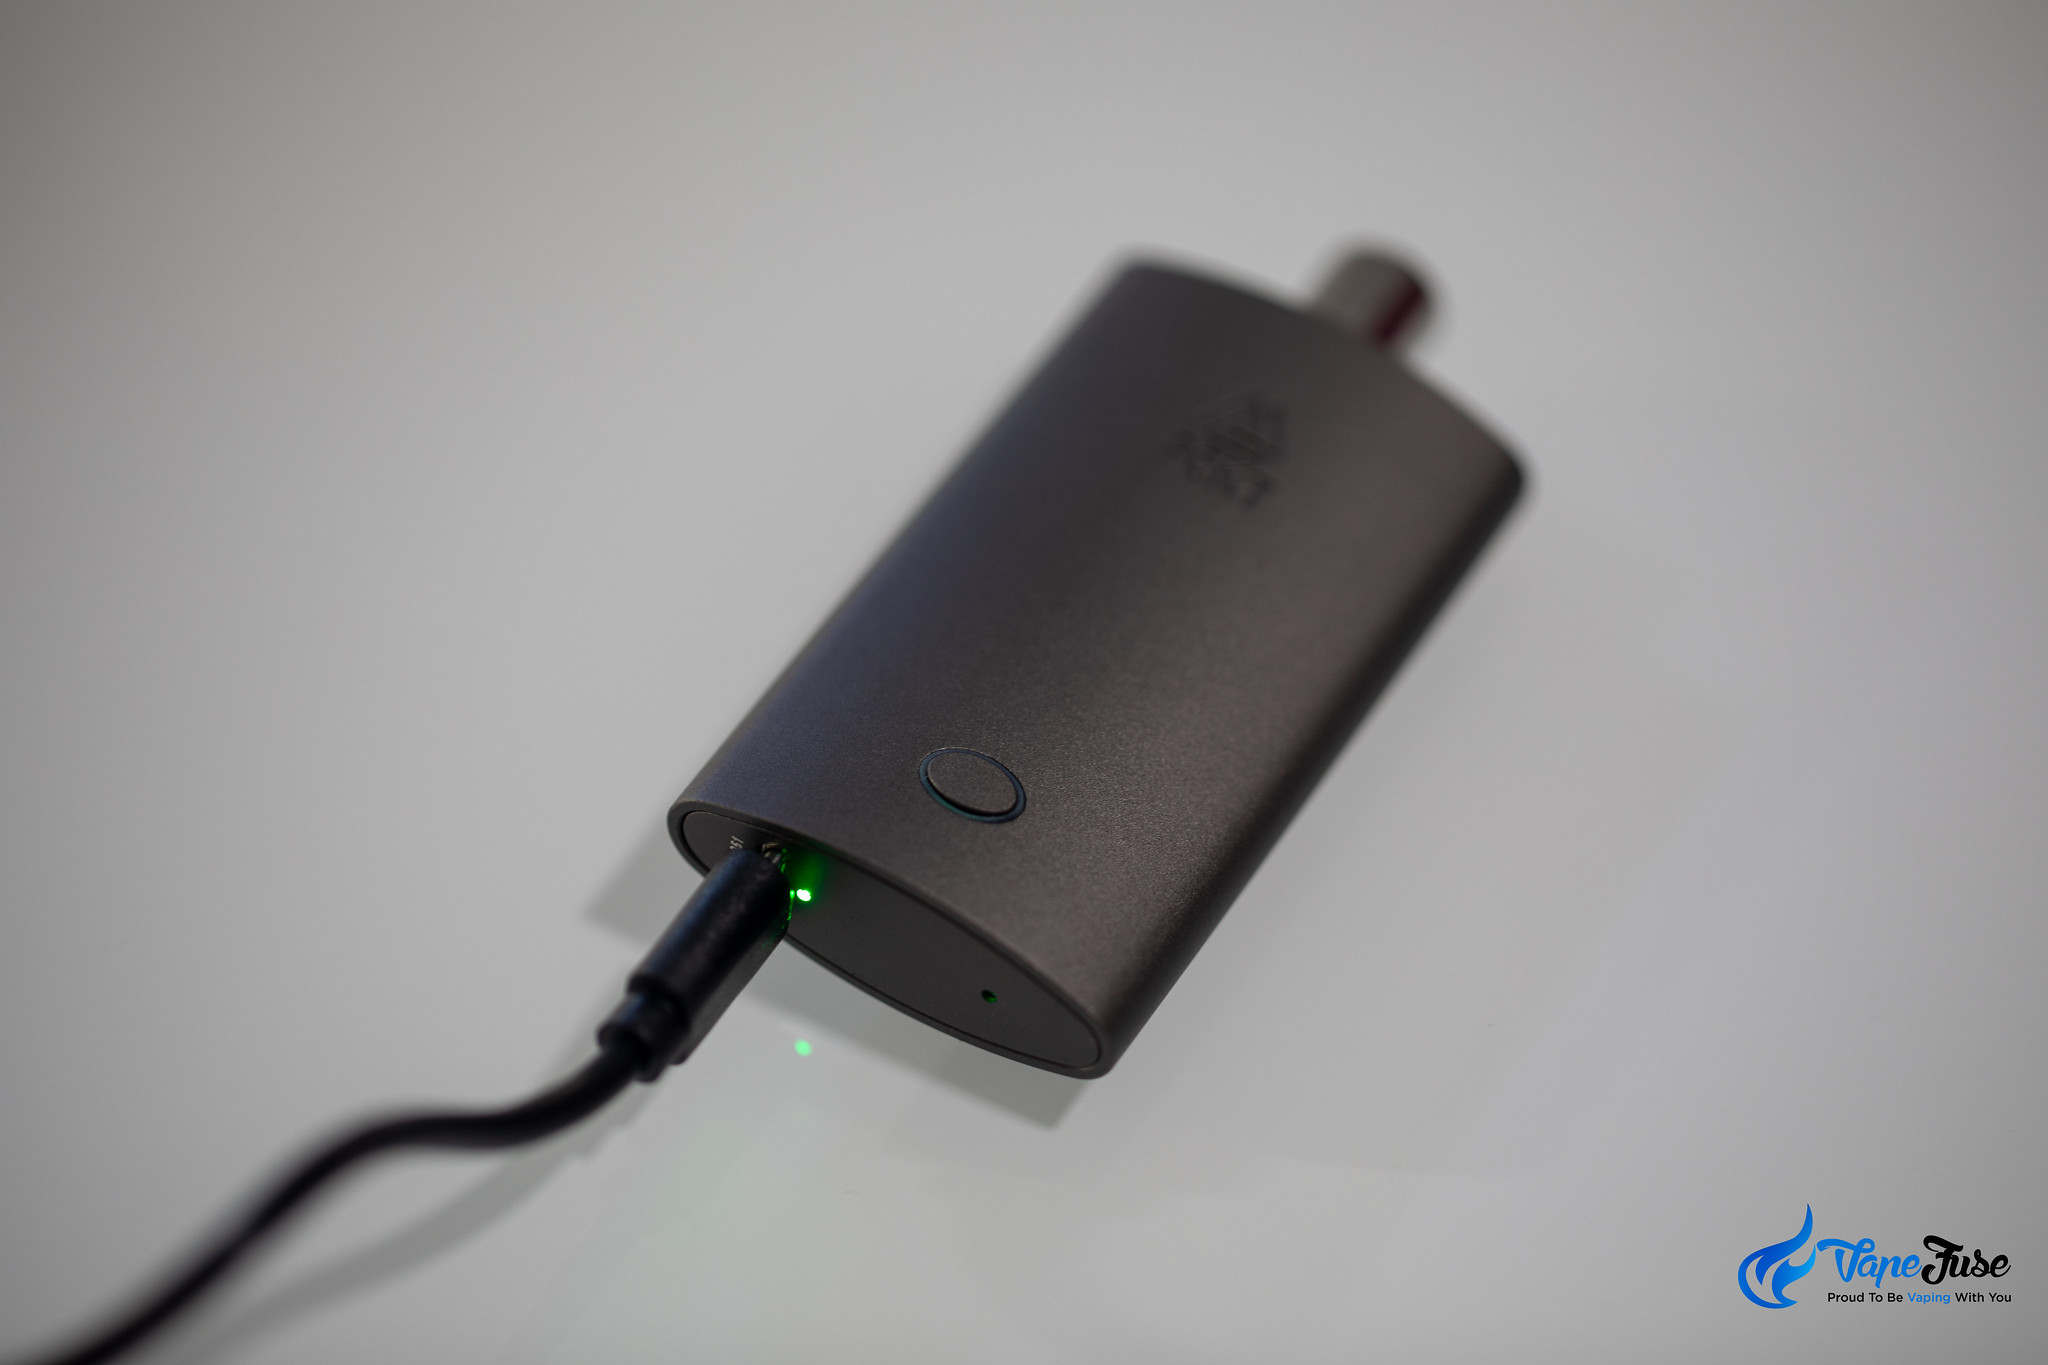 PCKT One Plus vaporizer on the USB charger